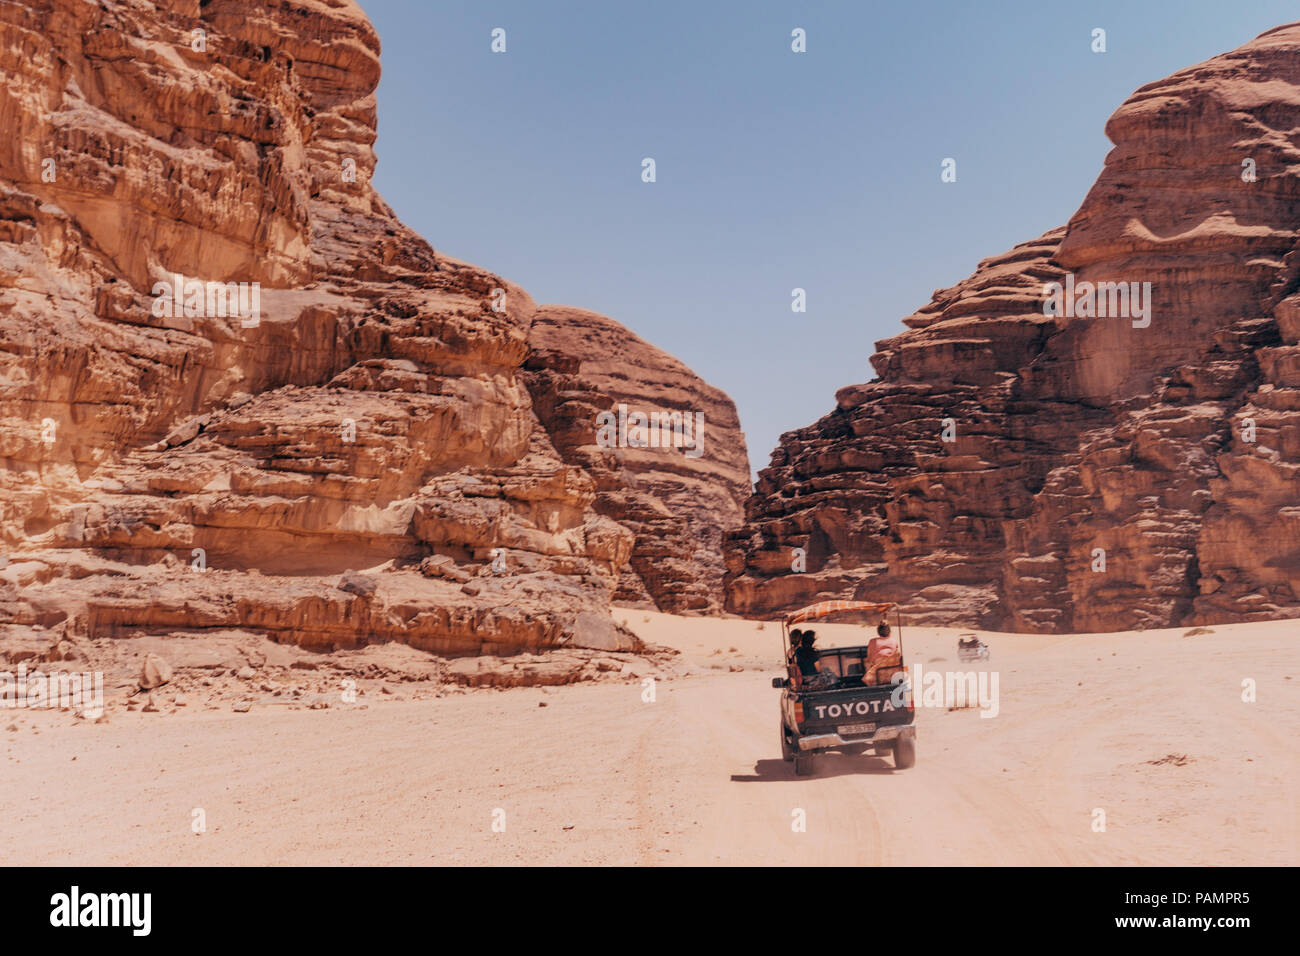 pickup tricks full of tourists drive in a convoy across the red desert sands in the famous Wadi Rum National Park, Jordan - Stock Image